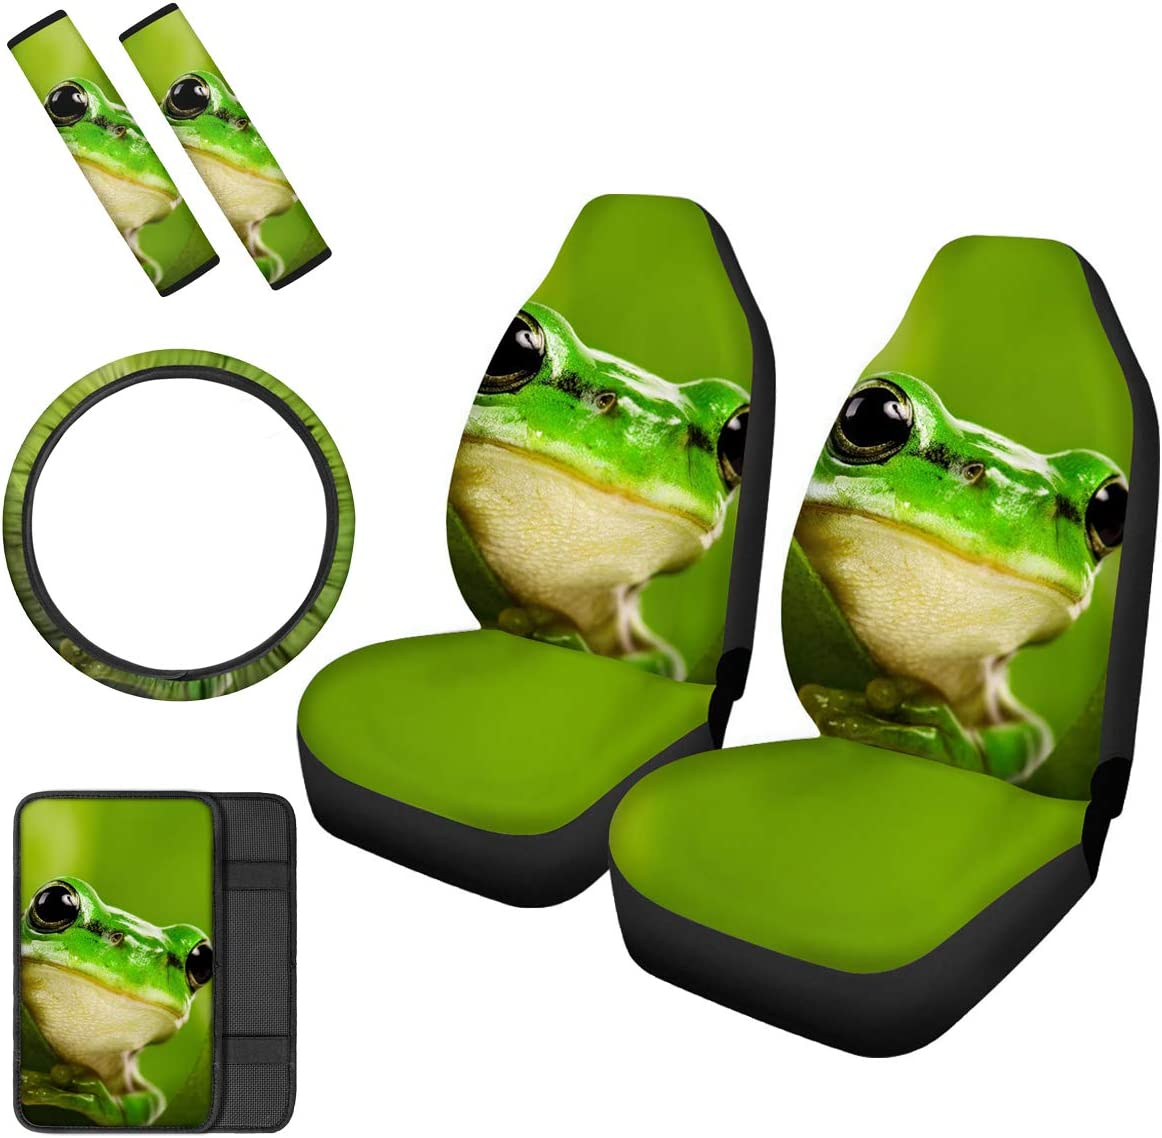 Console Armrest Deer 2pcs Front Bucket Car Seat Covers Steering Wheels and Seat Belt Pads Set for Car SUV Truck /& Van